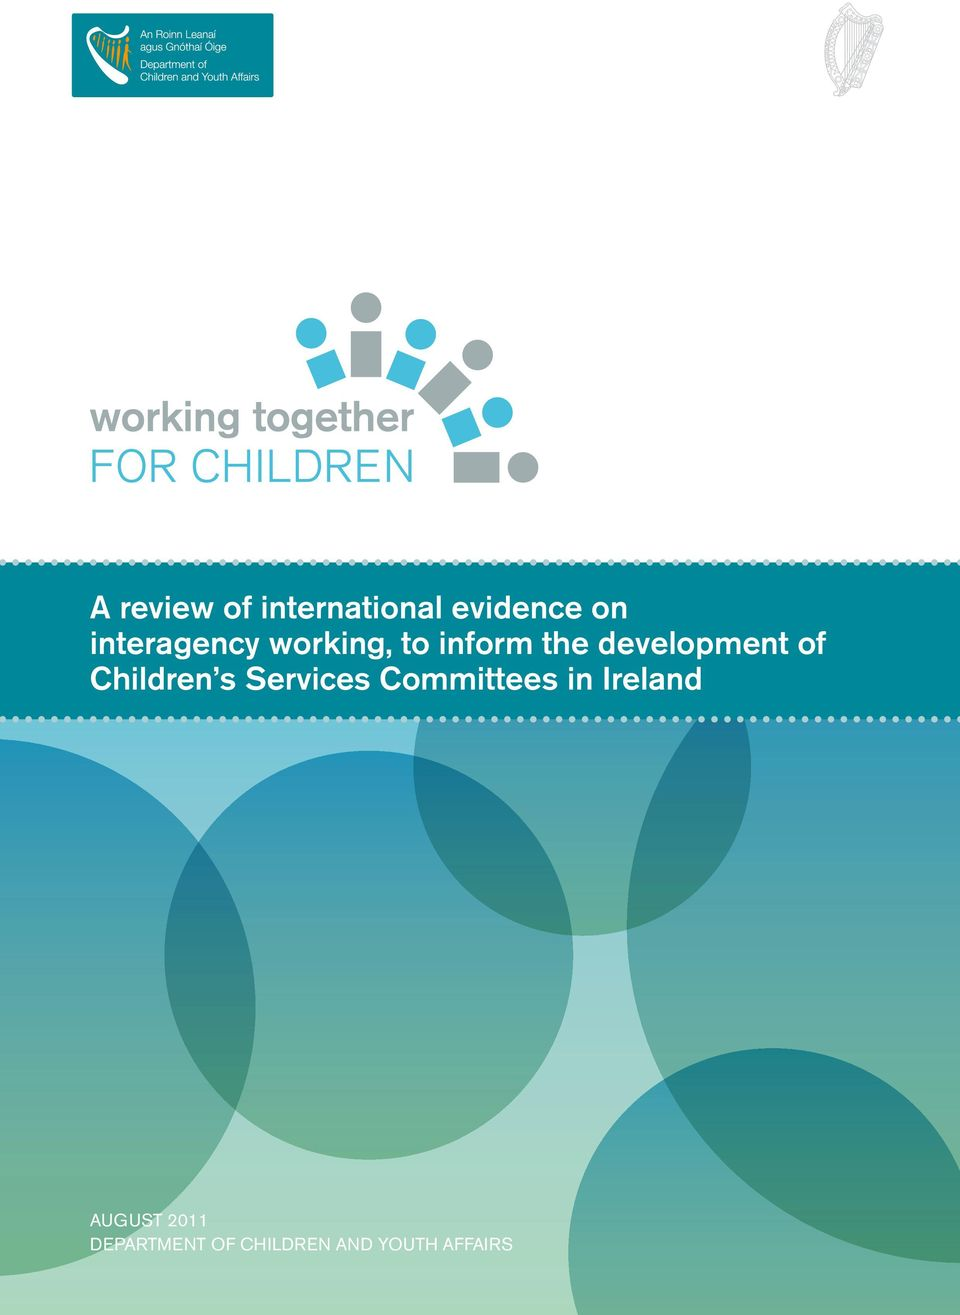 development of Children s Services Committees